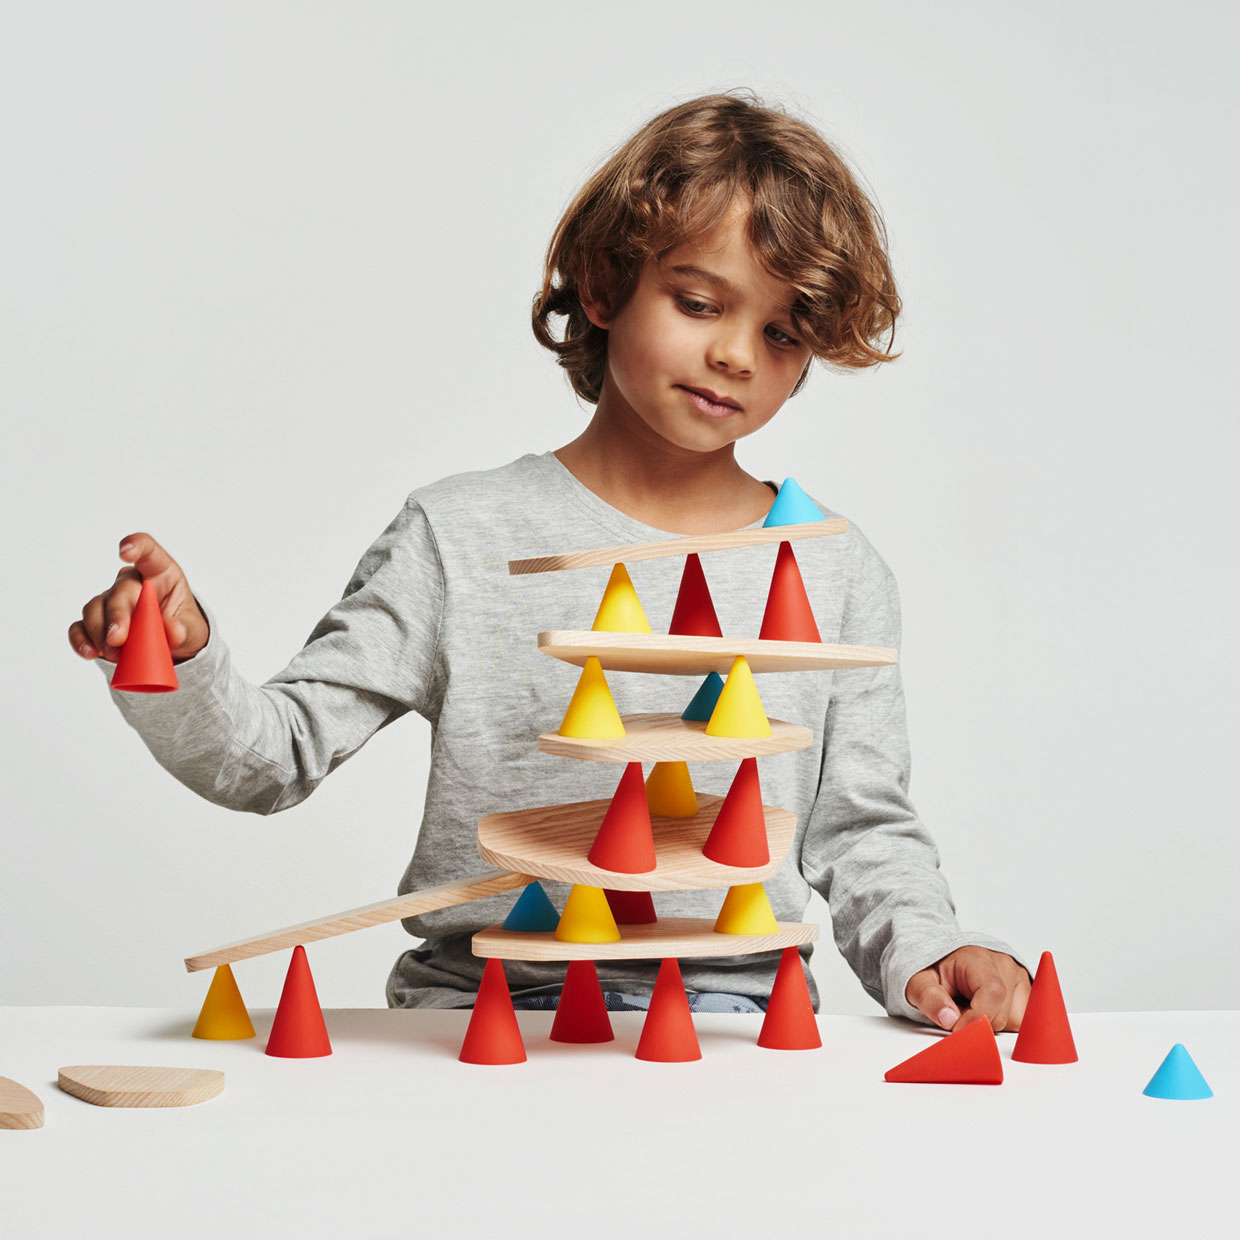 Piks By Oppi Educational Toy For Children To Develop Concentration